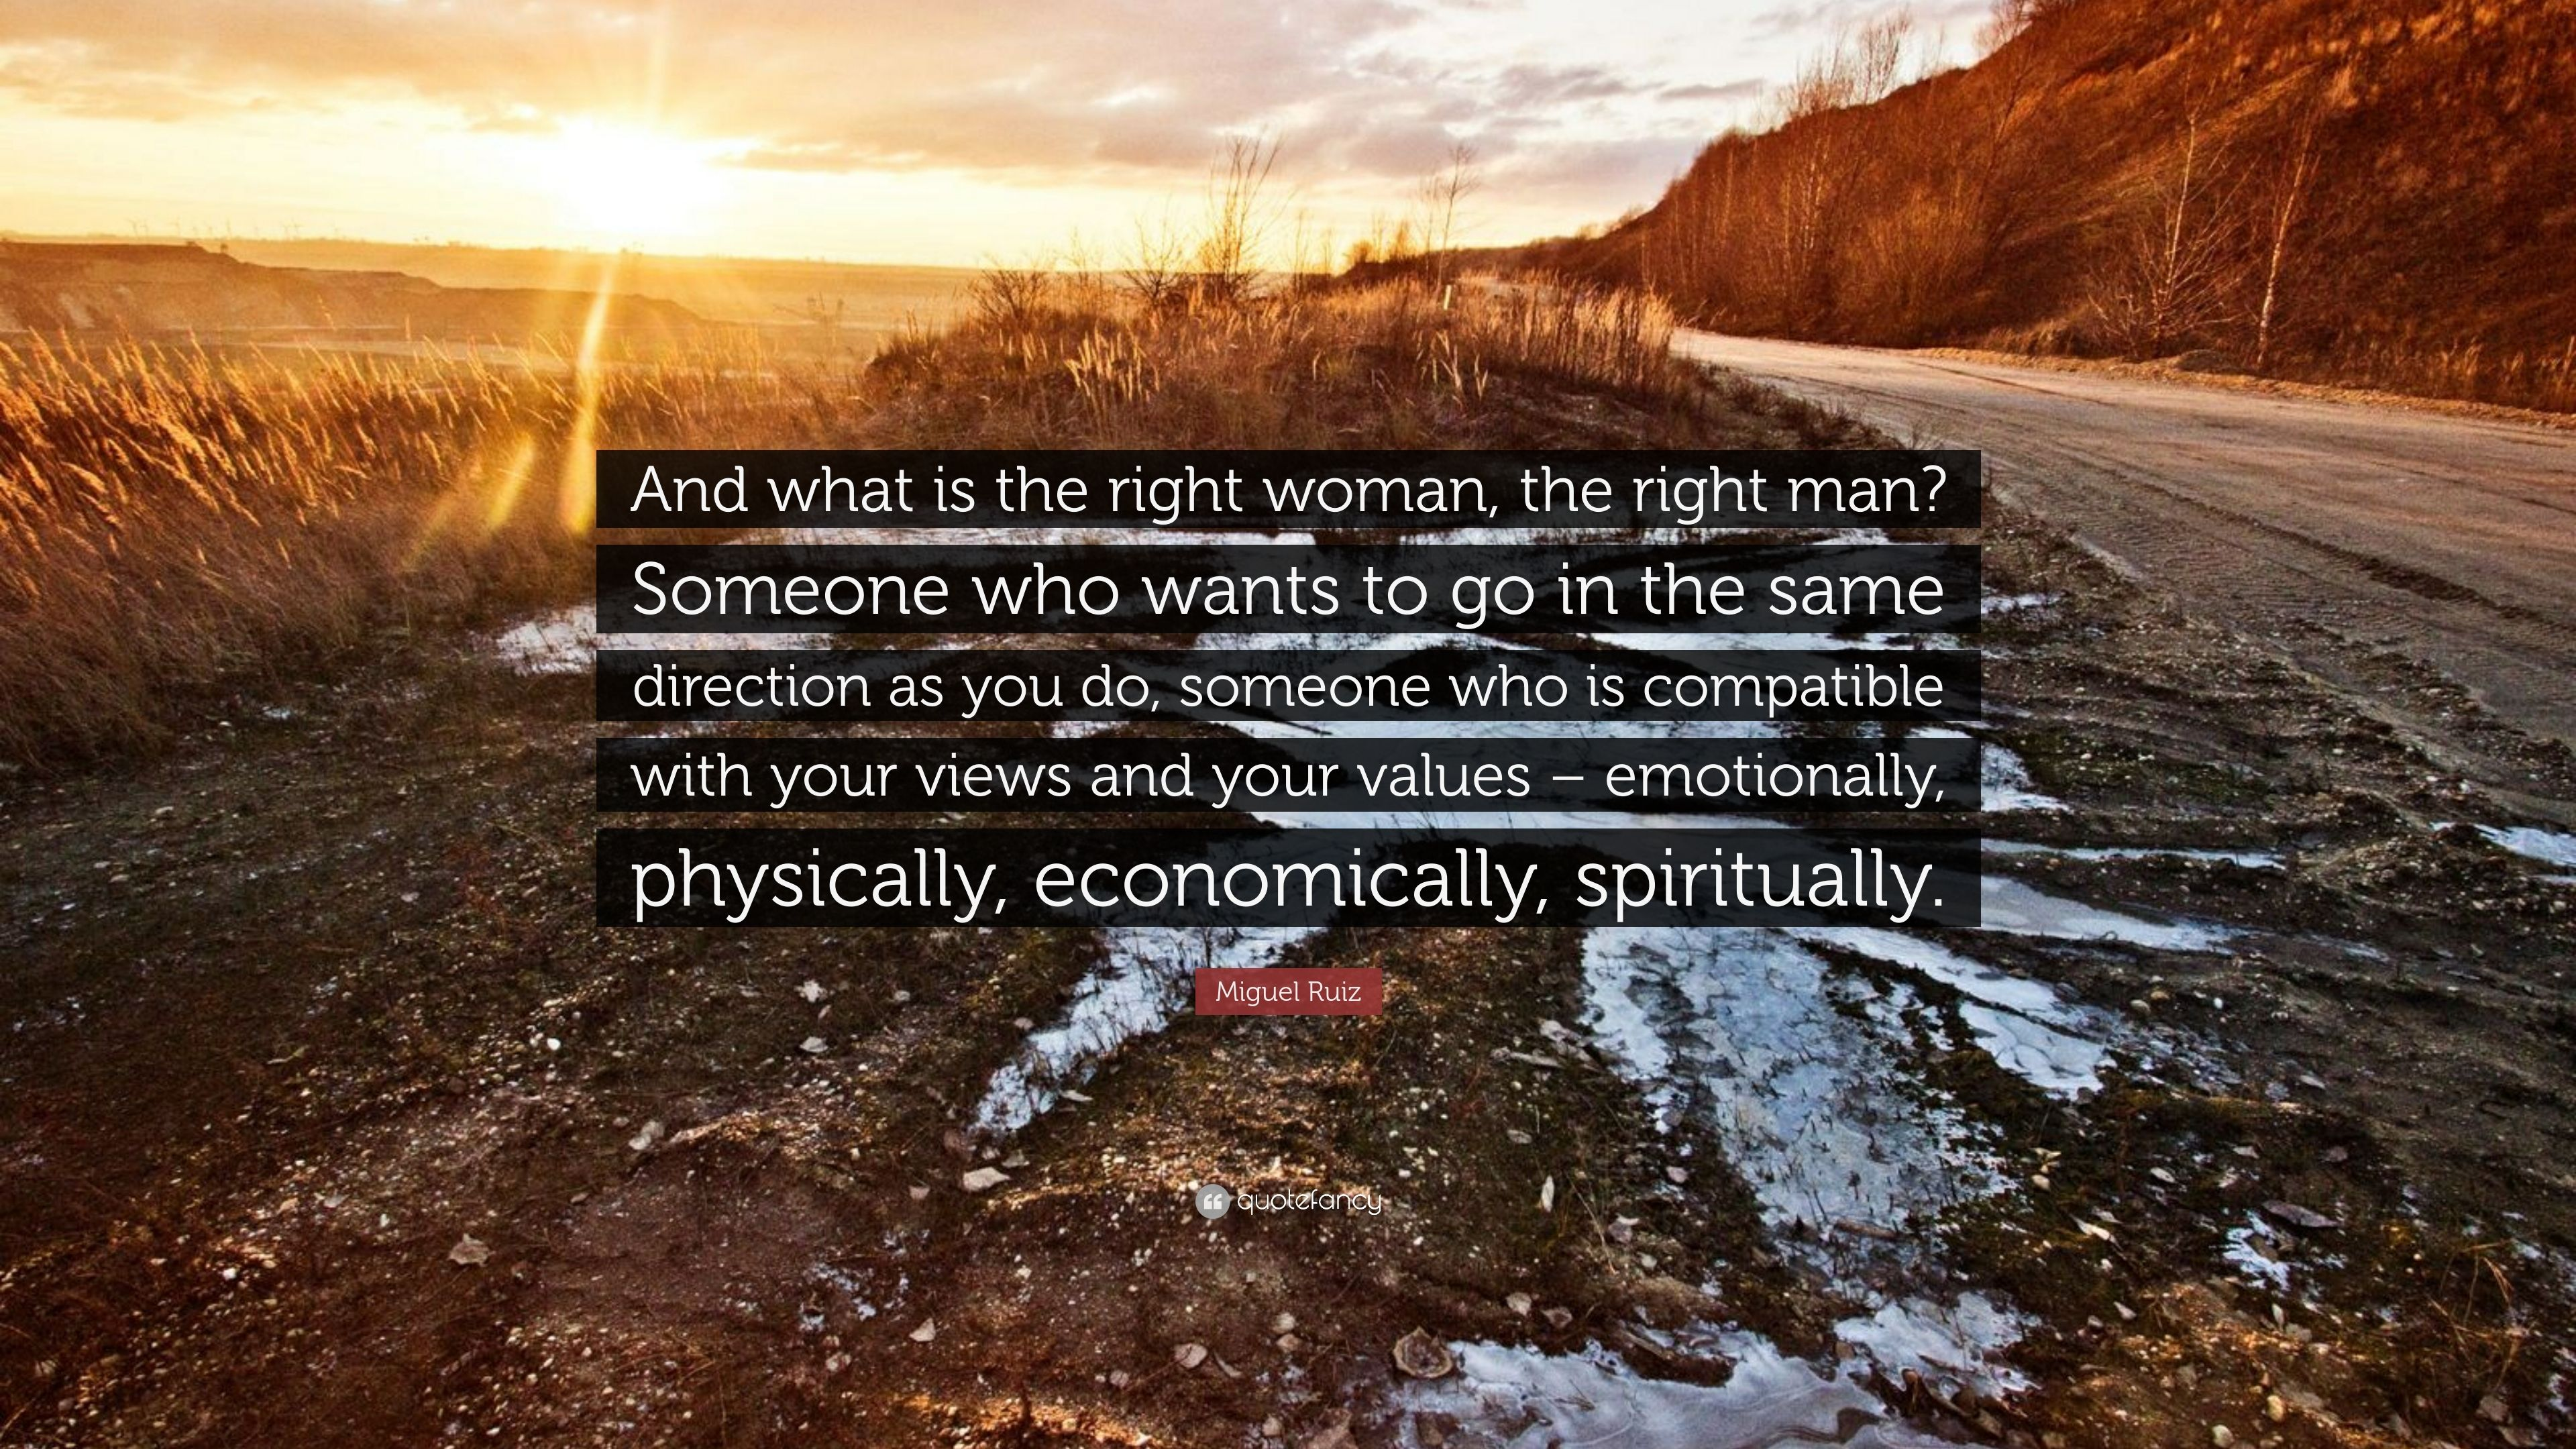 Who is the right man